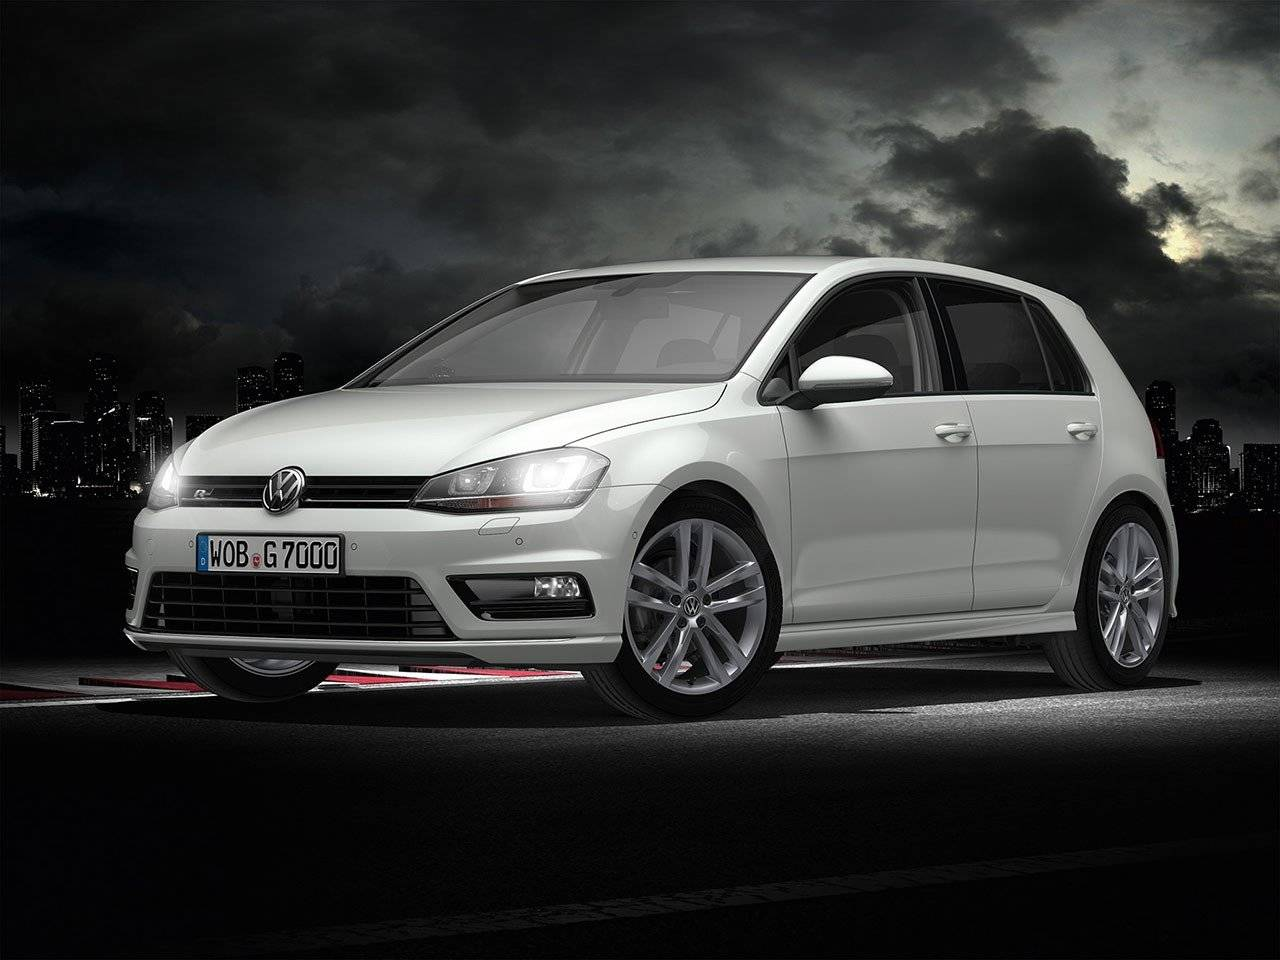 nu ook prijzen volkswagen golf r line autonieuws. Black Bedroom Furniture Sets. Home Design Ideas